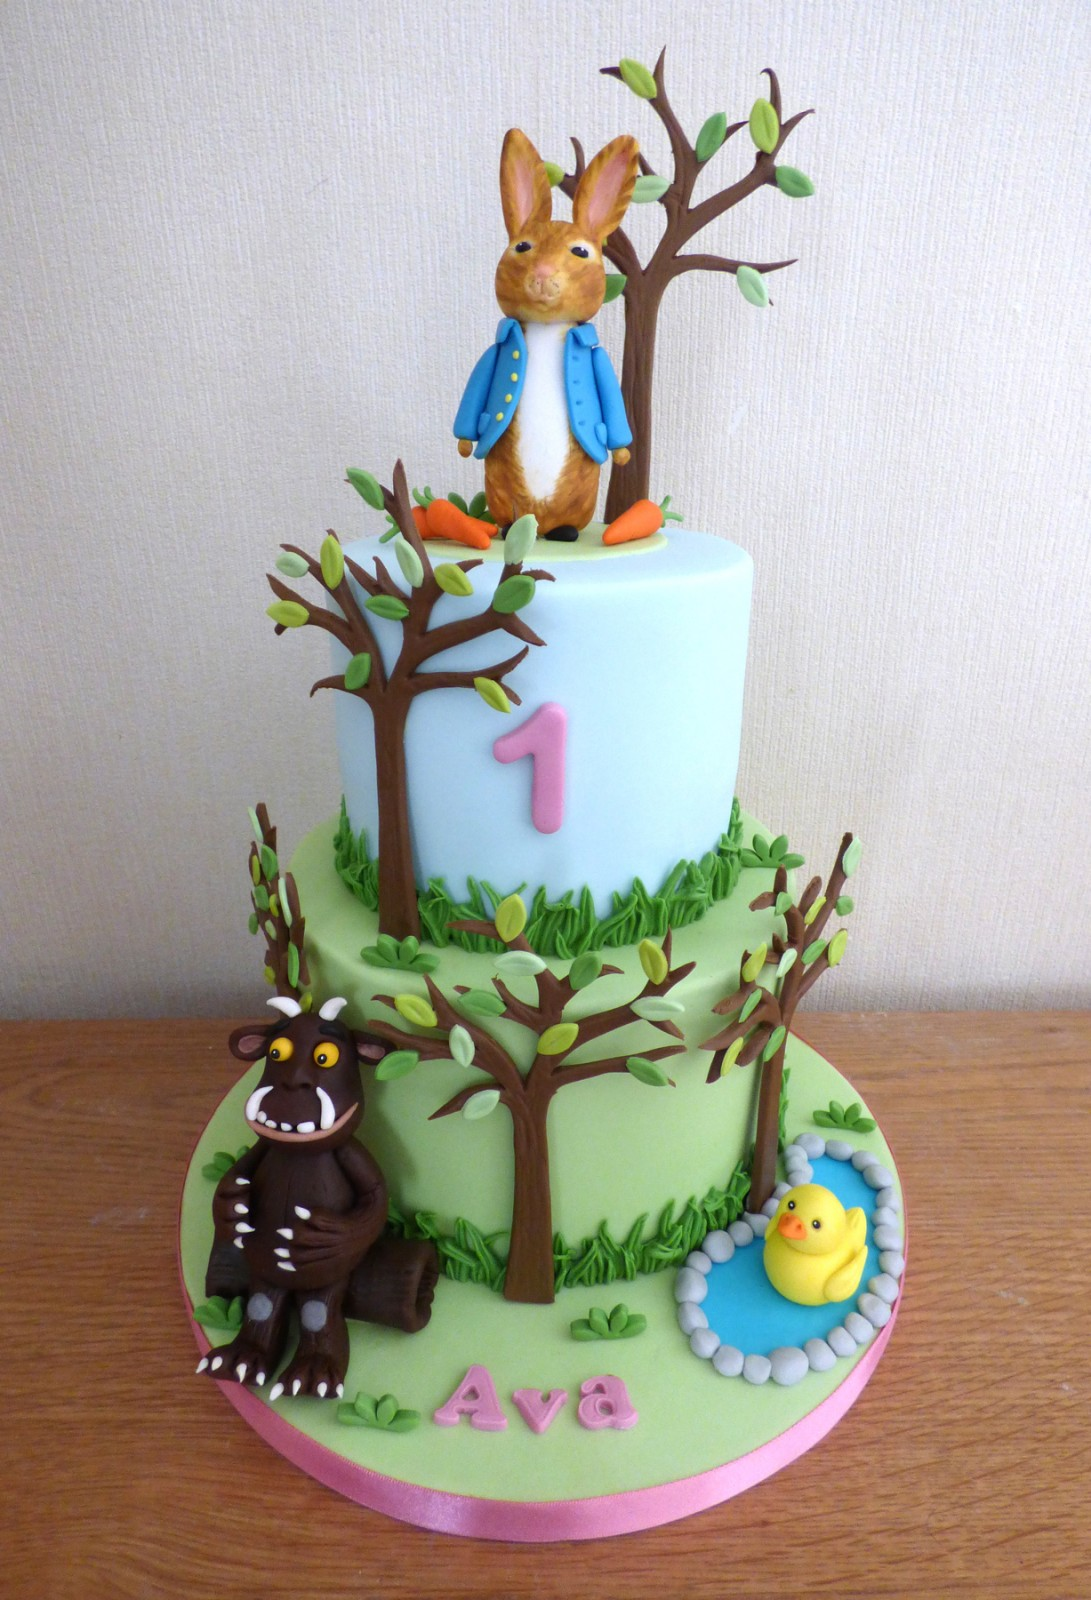 Incredible 2 Tier Gruffalo And Peter Rabbit Birthday Cake Susies Cakes Personalised Birthday Cards Paralily Jamesorg